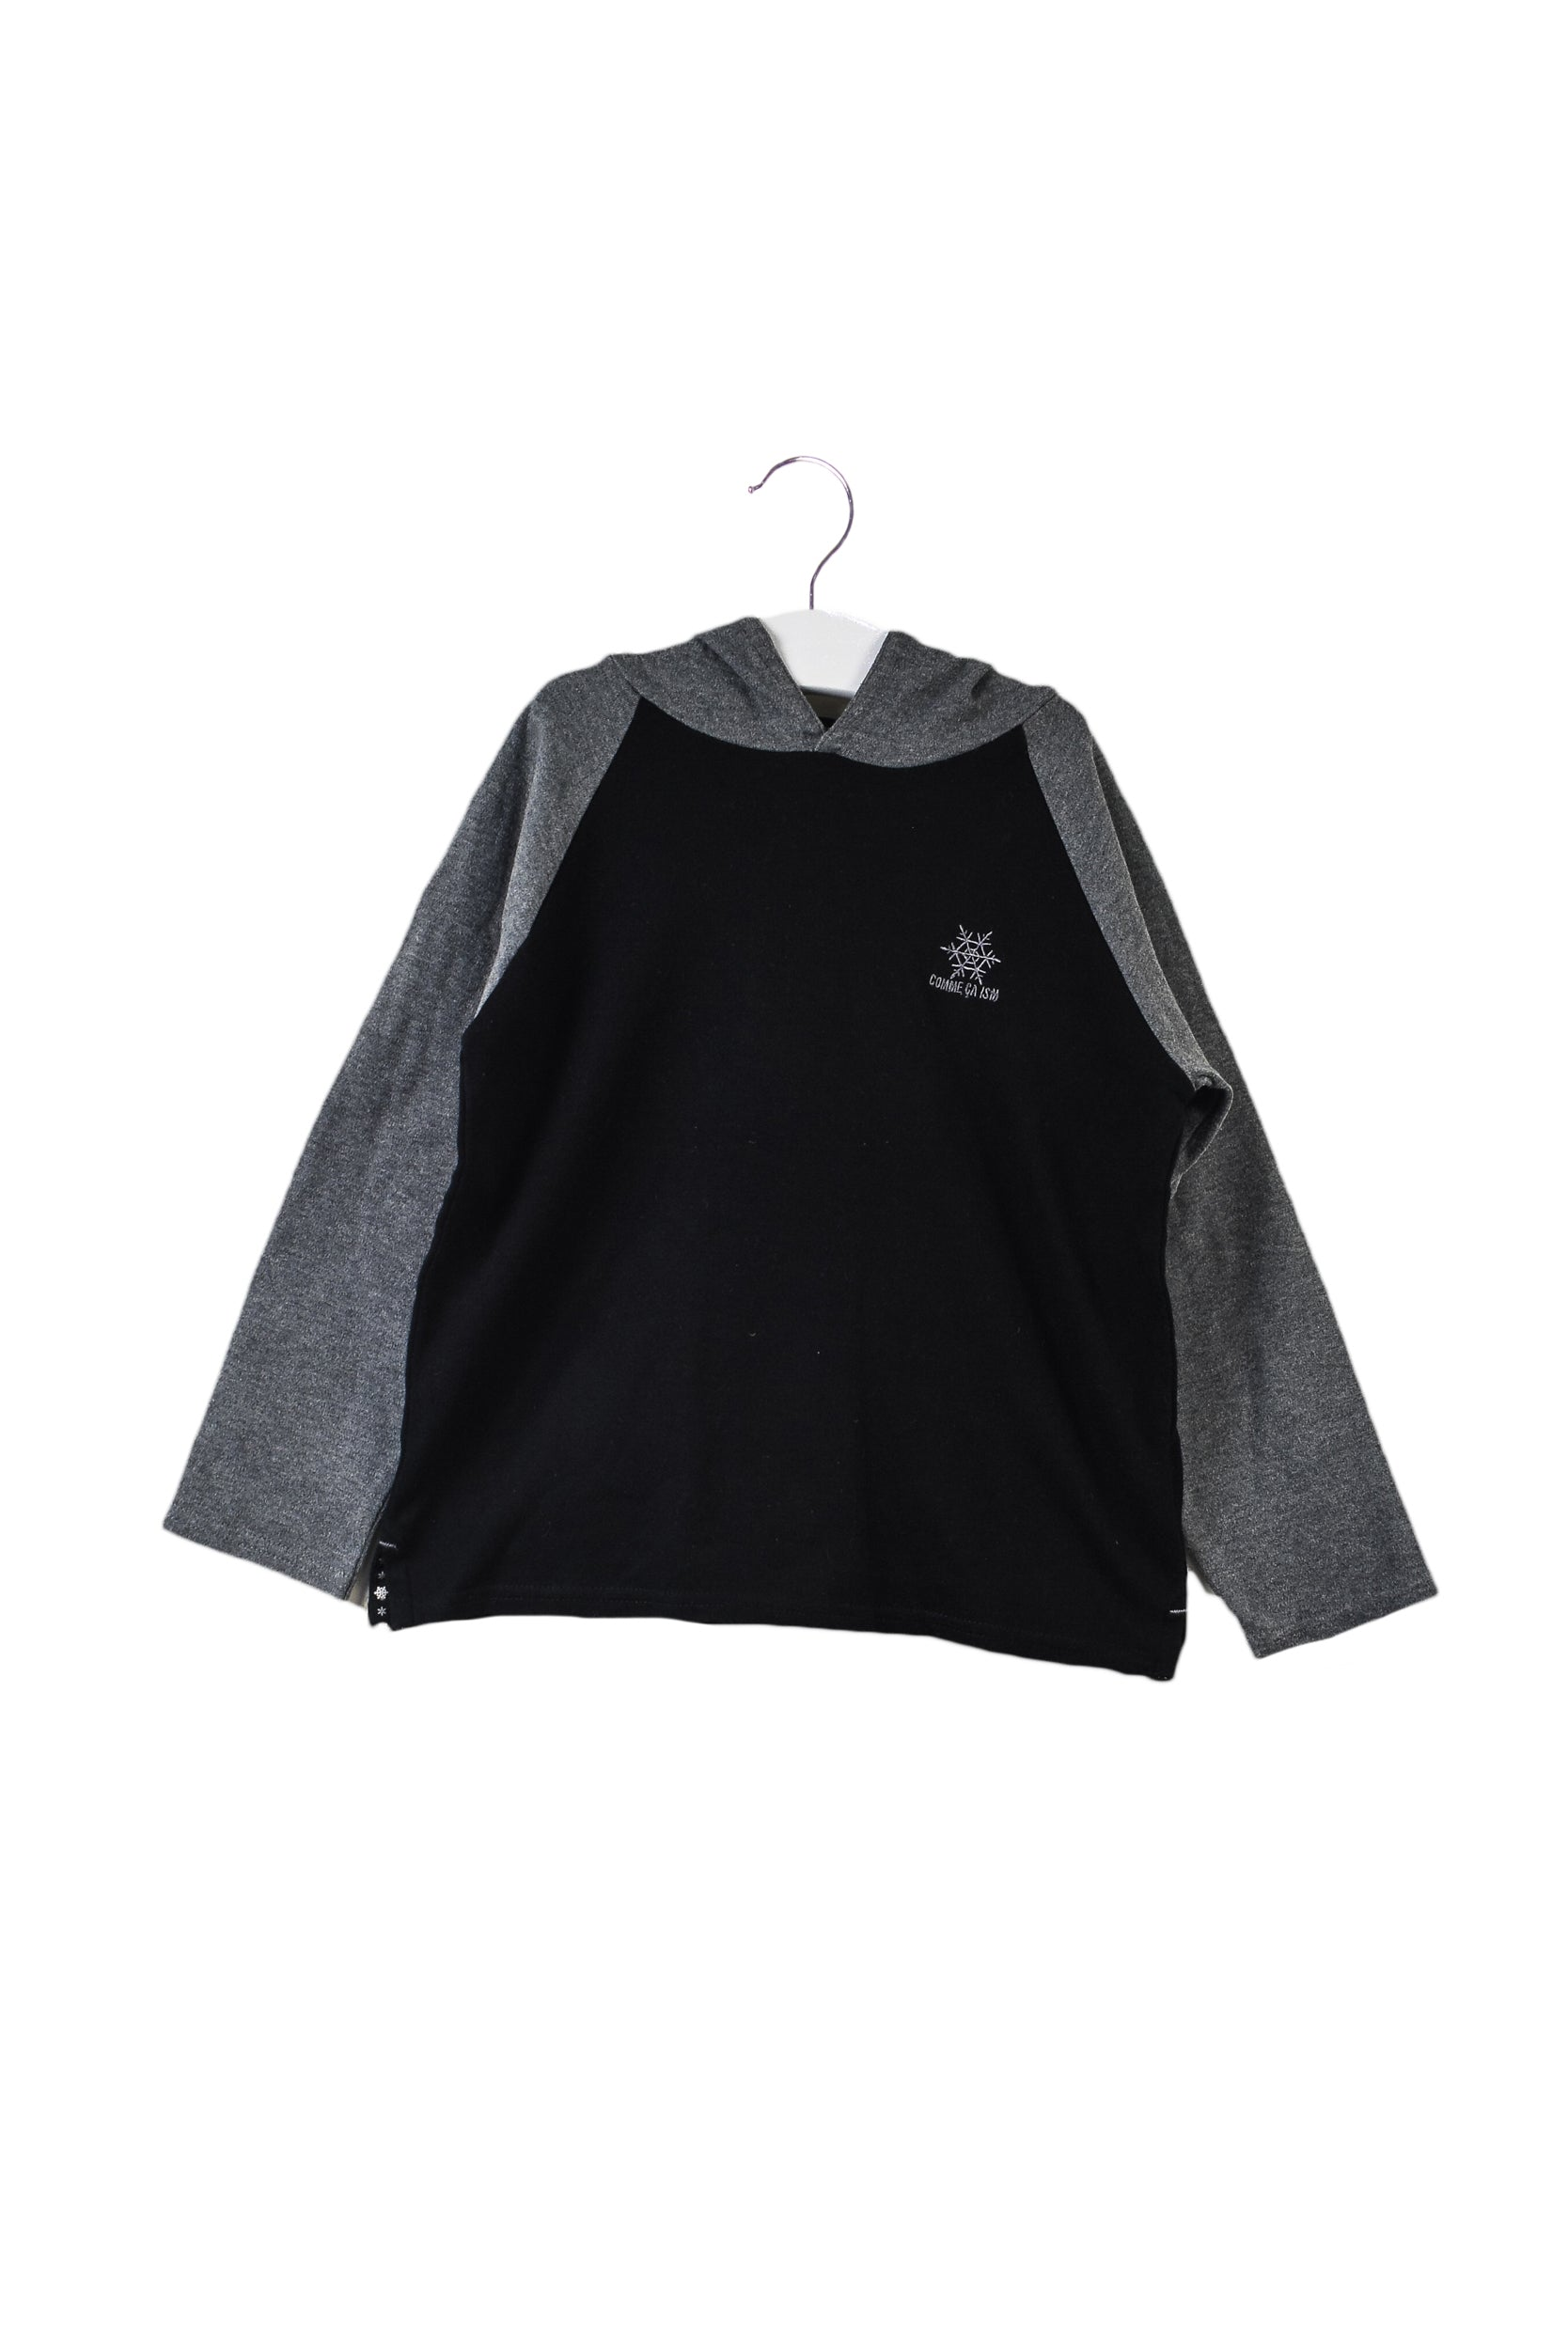 Long Sleeve Top 5T at Retykle